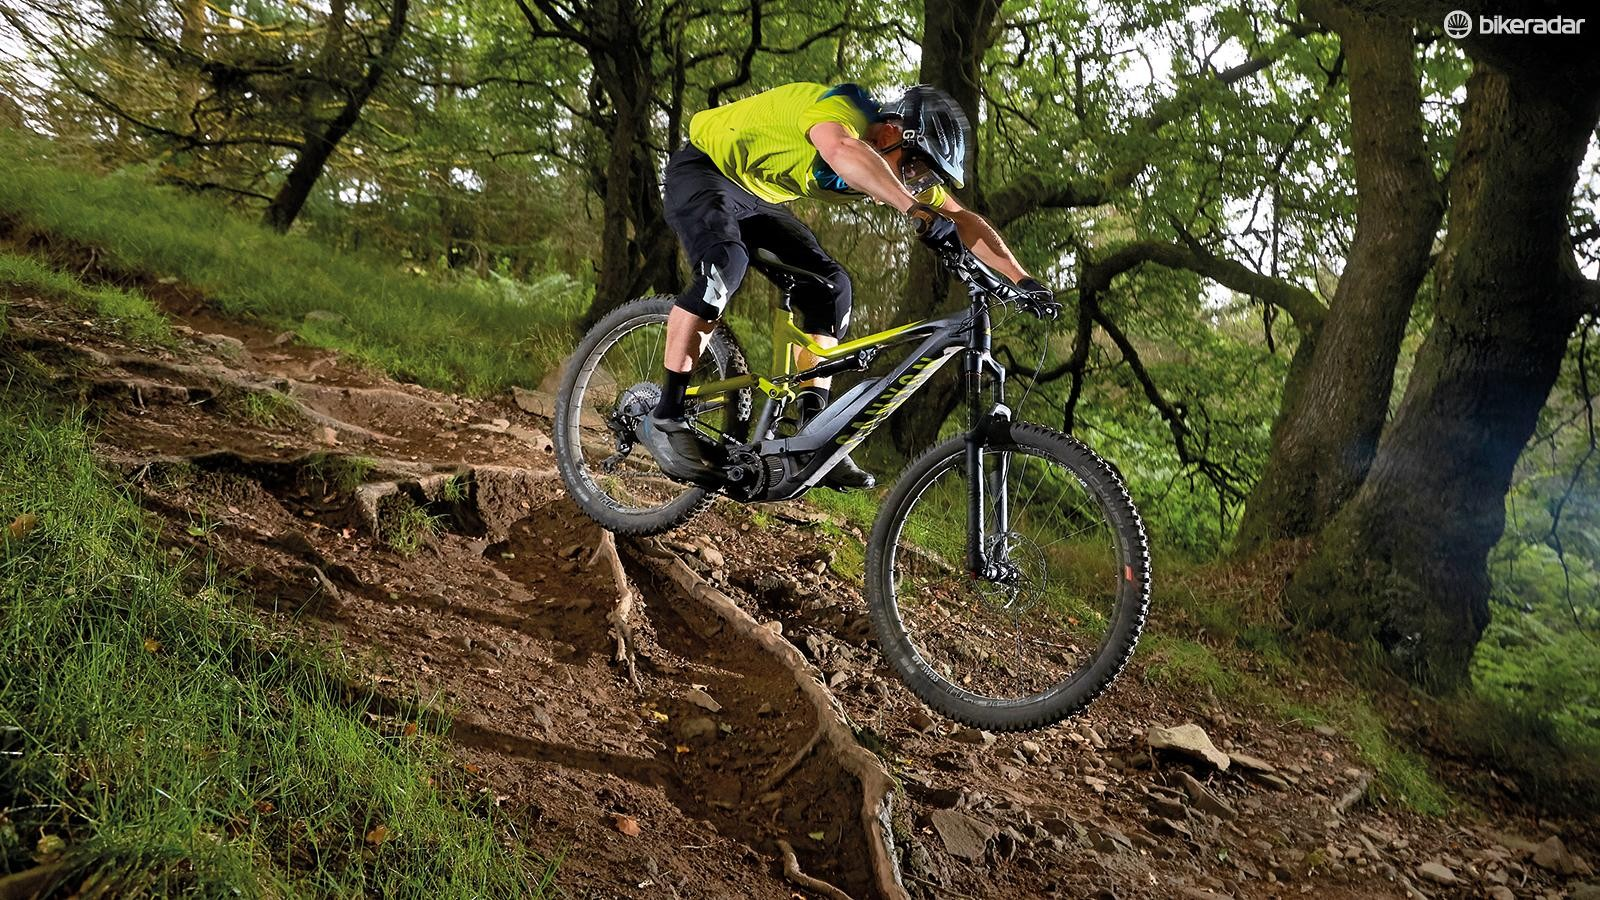 The Spectral:ON suspension system is supple where needed and supportive when things get rowdier